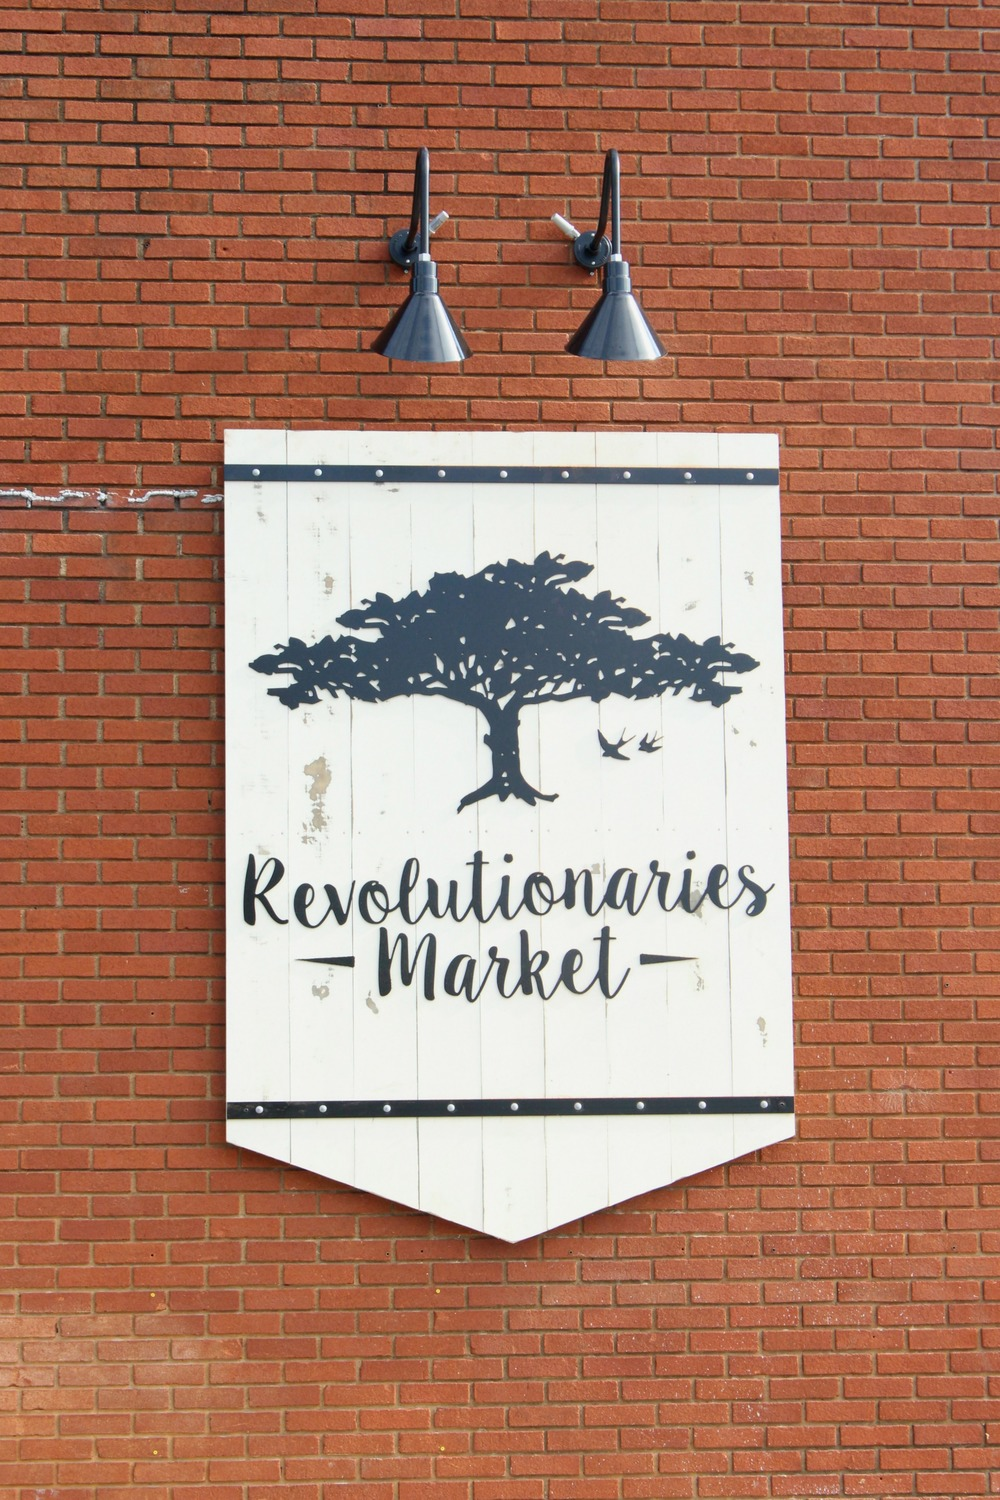 Revolutionaries Market Renovation: Final Reveal!